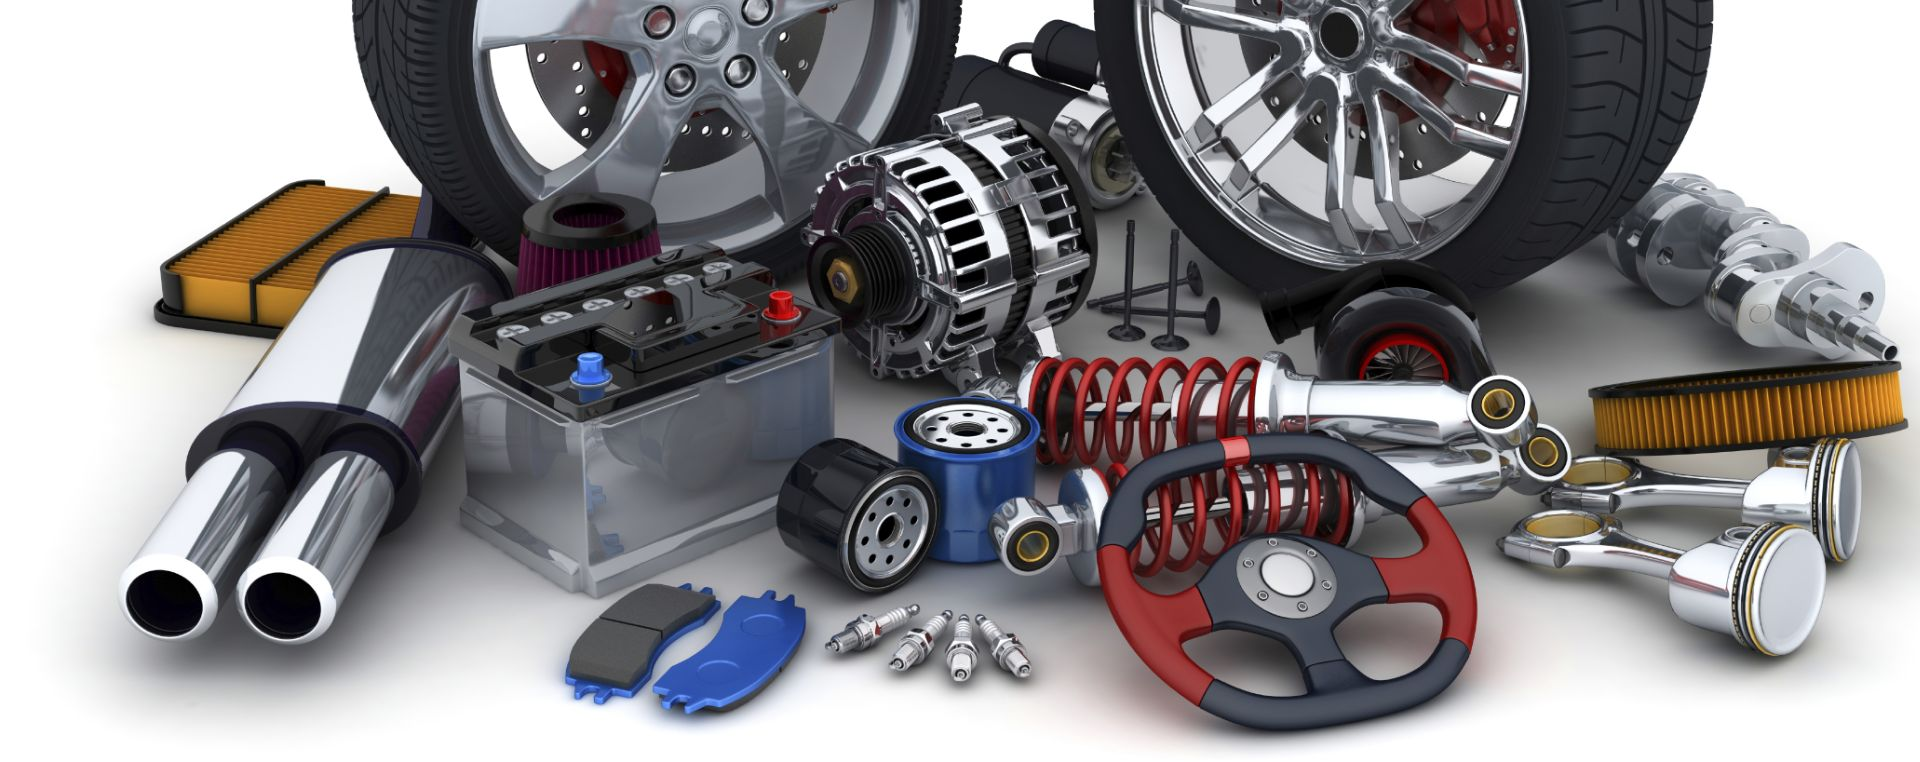 Genuine Auto Spare Parts and Accessories Dealers